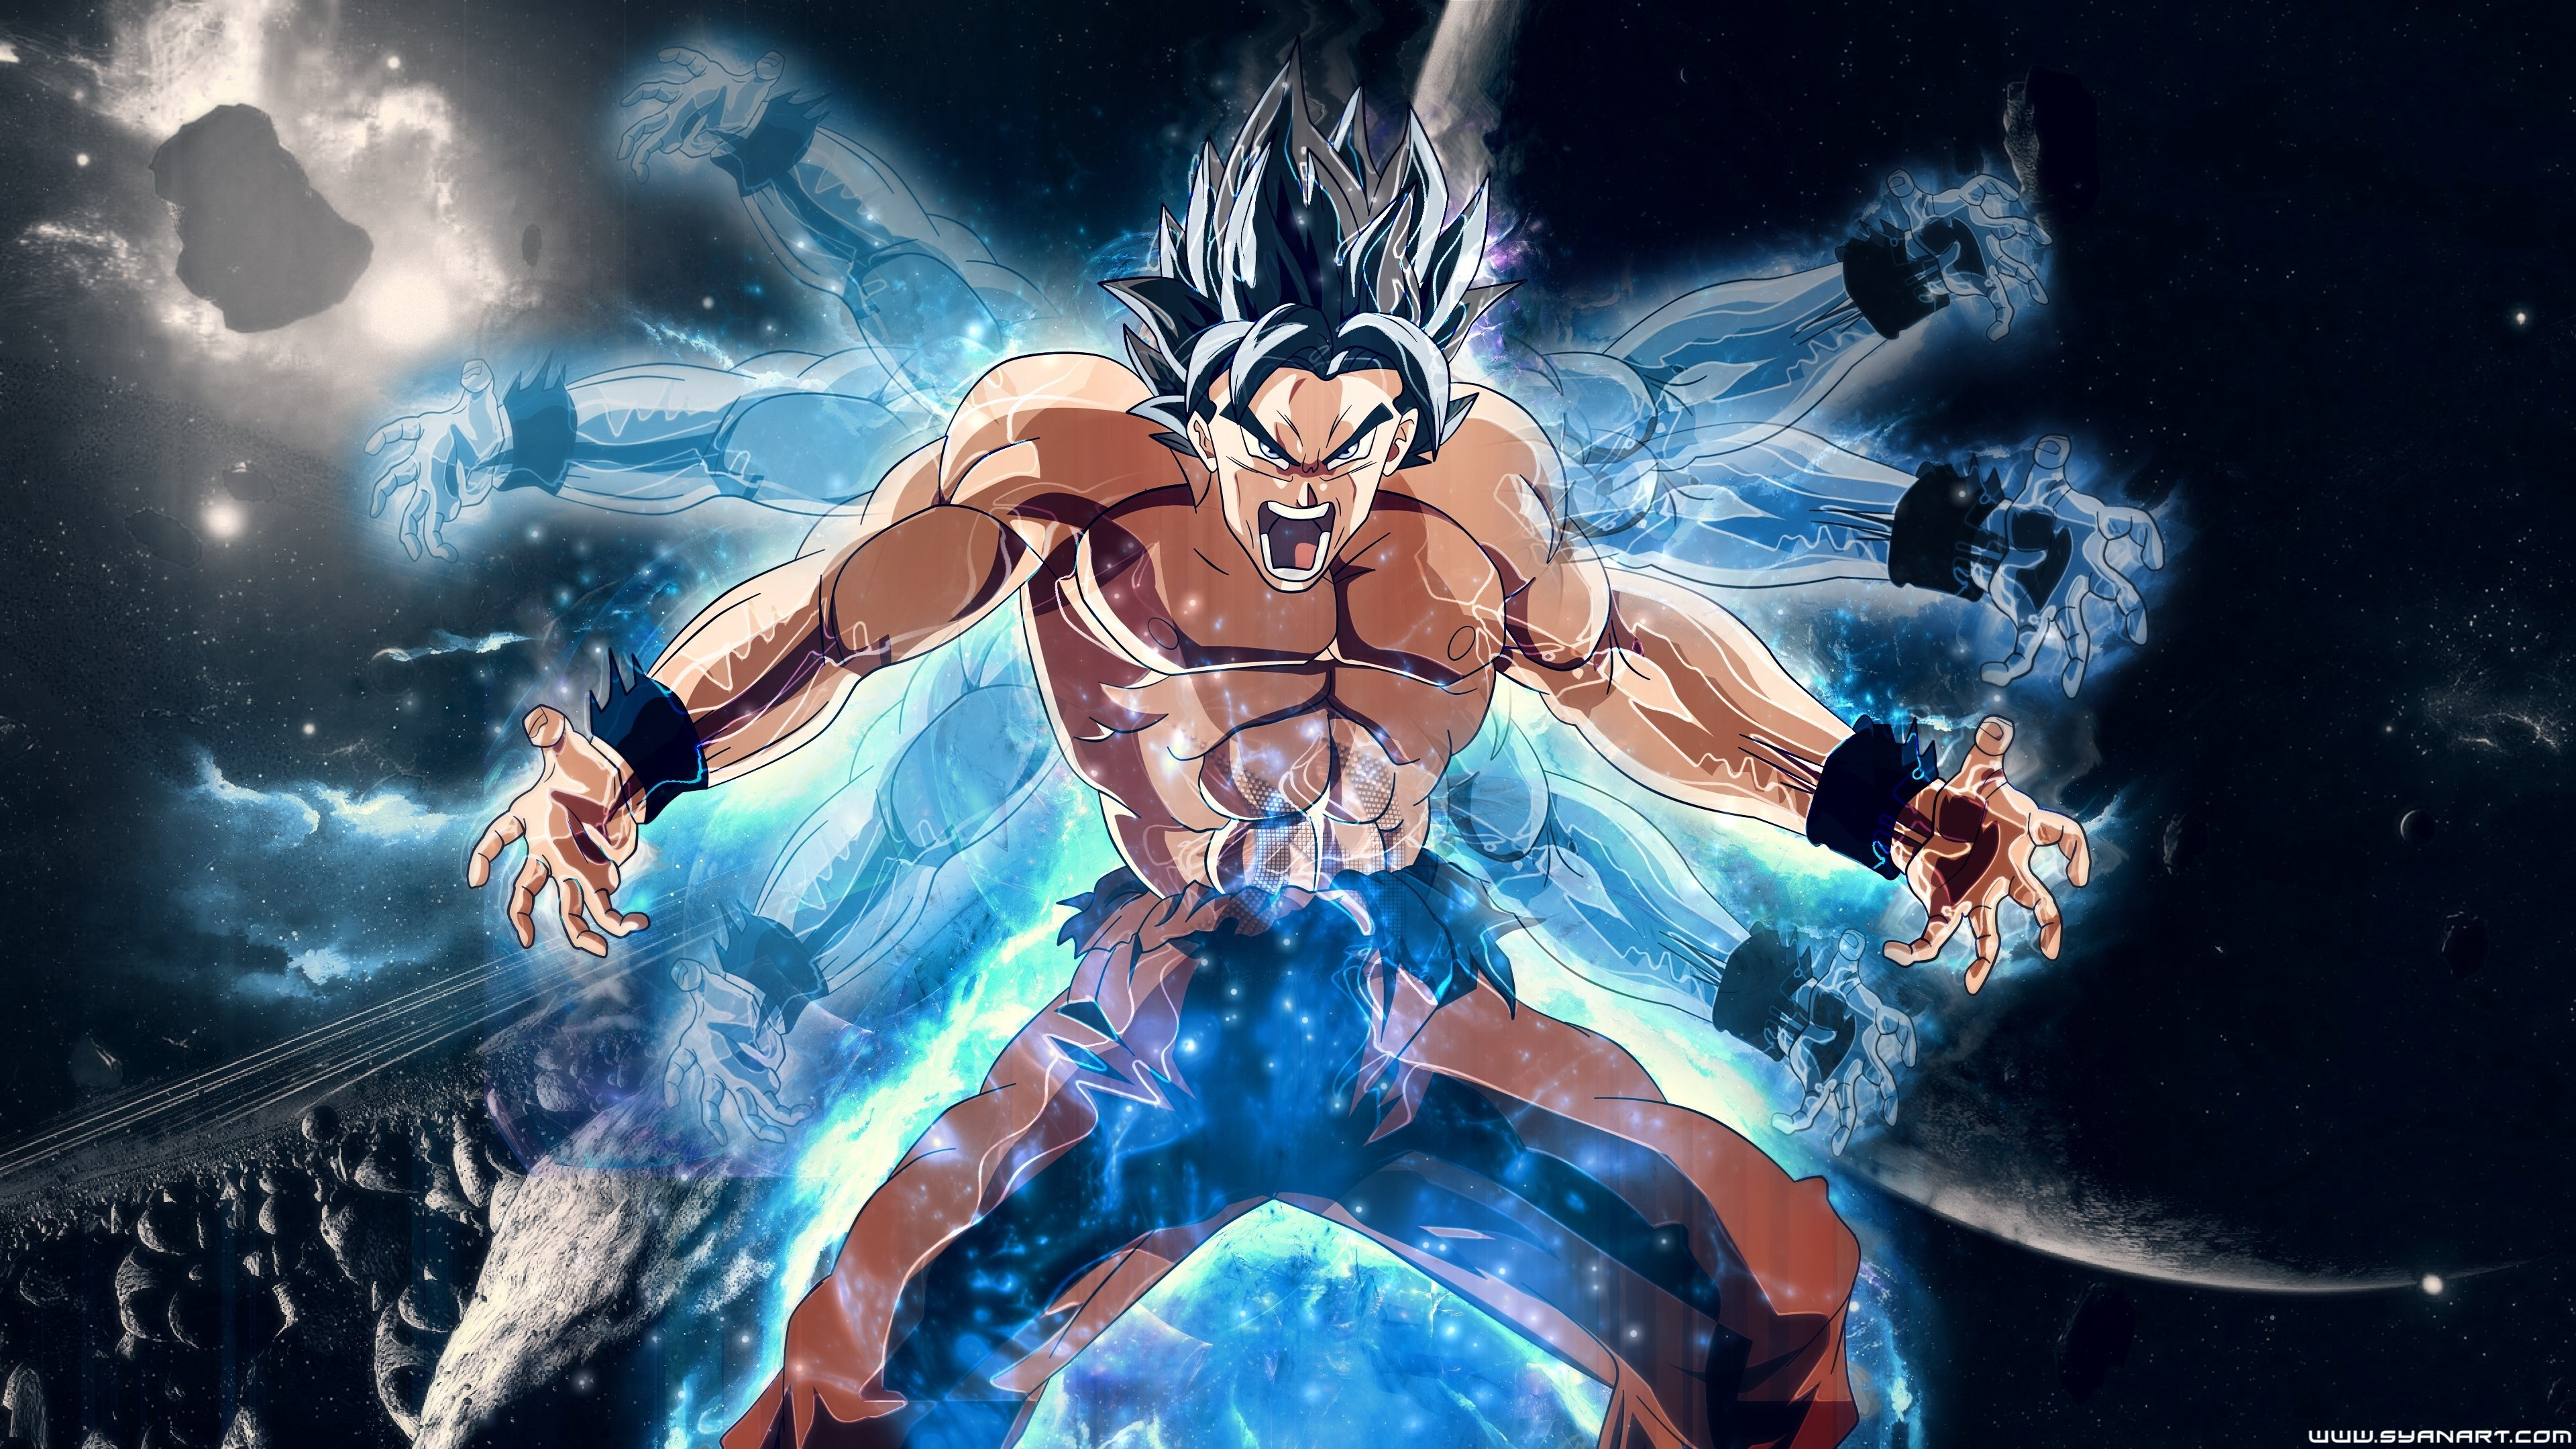 Dragon ball hd wallpapers 71 images - 3d wallpaper of dragon ball z ...